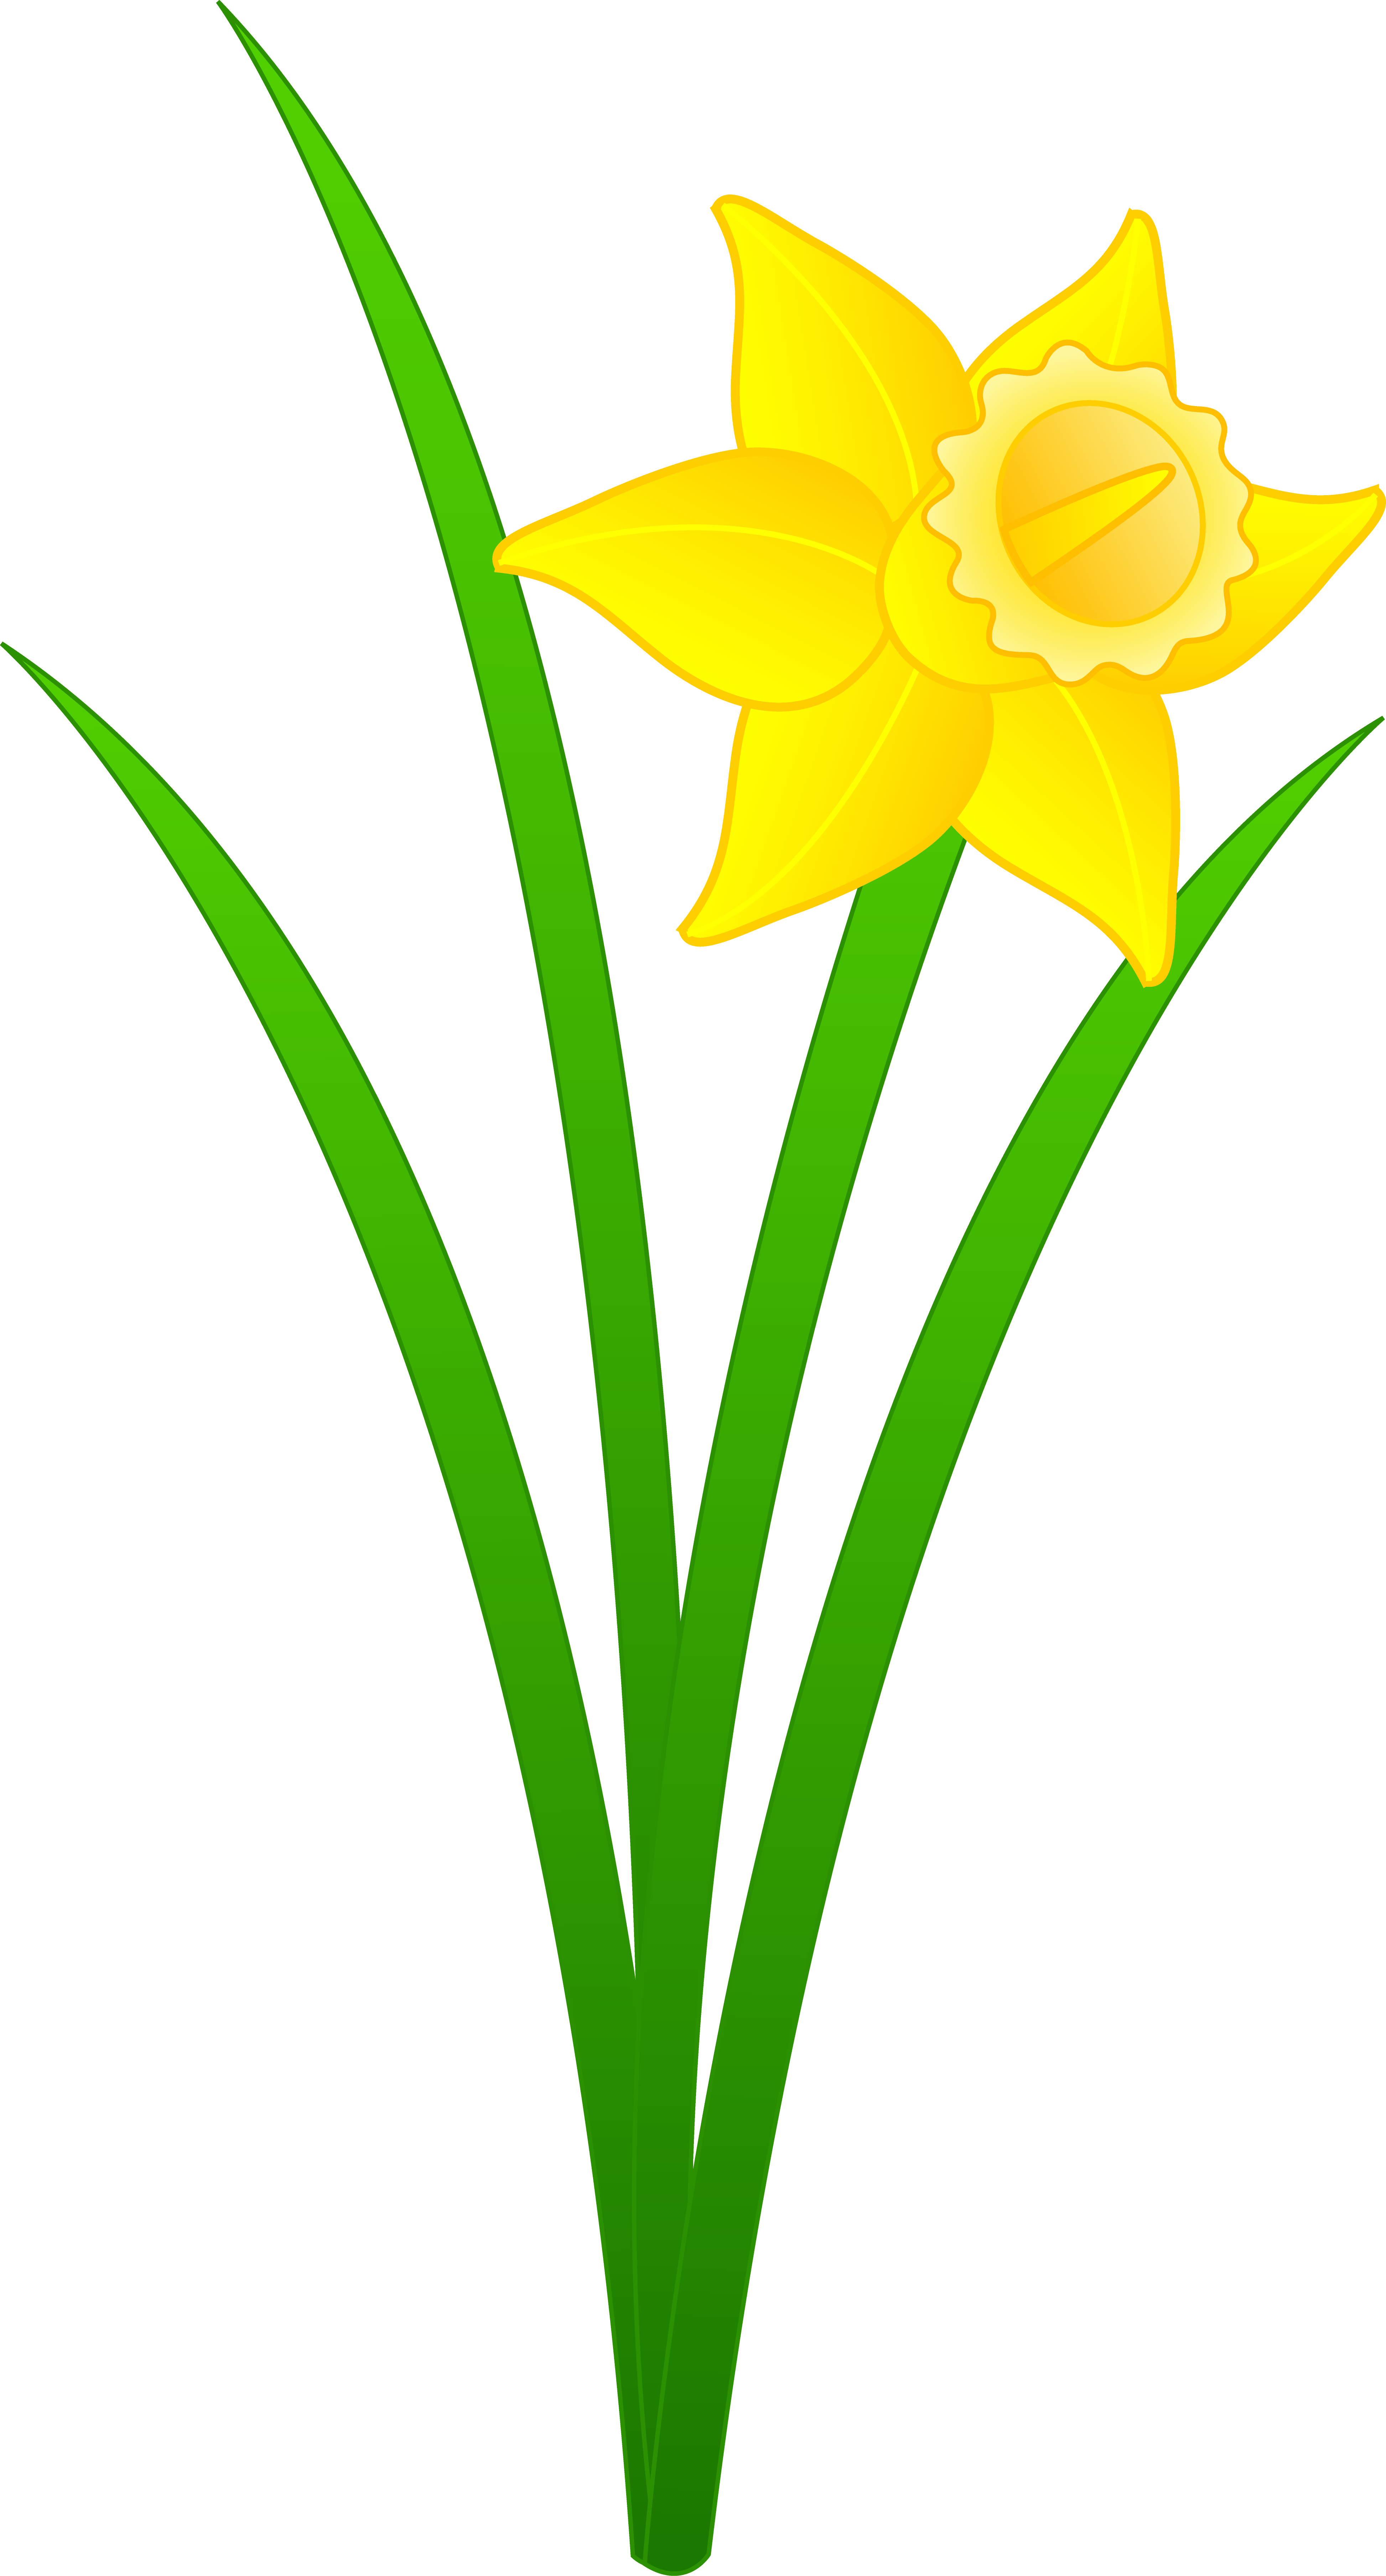 Free Images Daffodils, Download Free Clip Art, Free Clip Art.